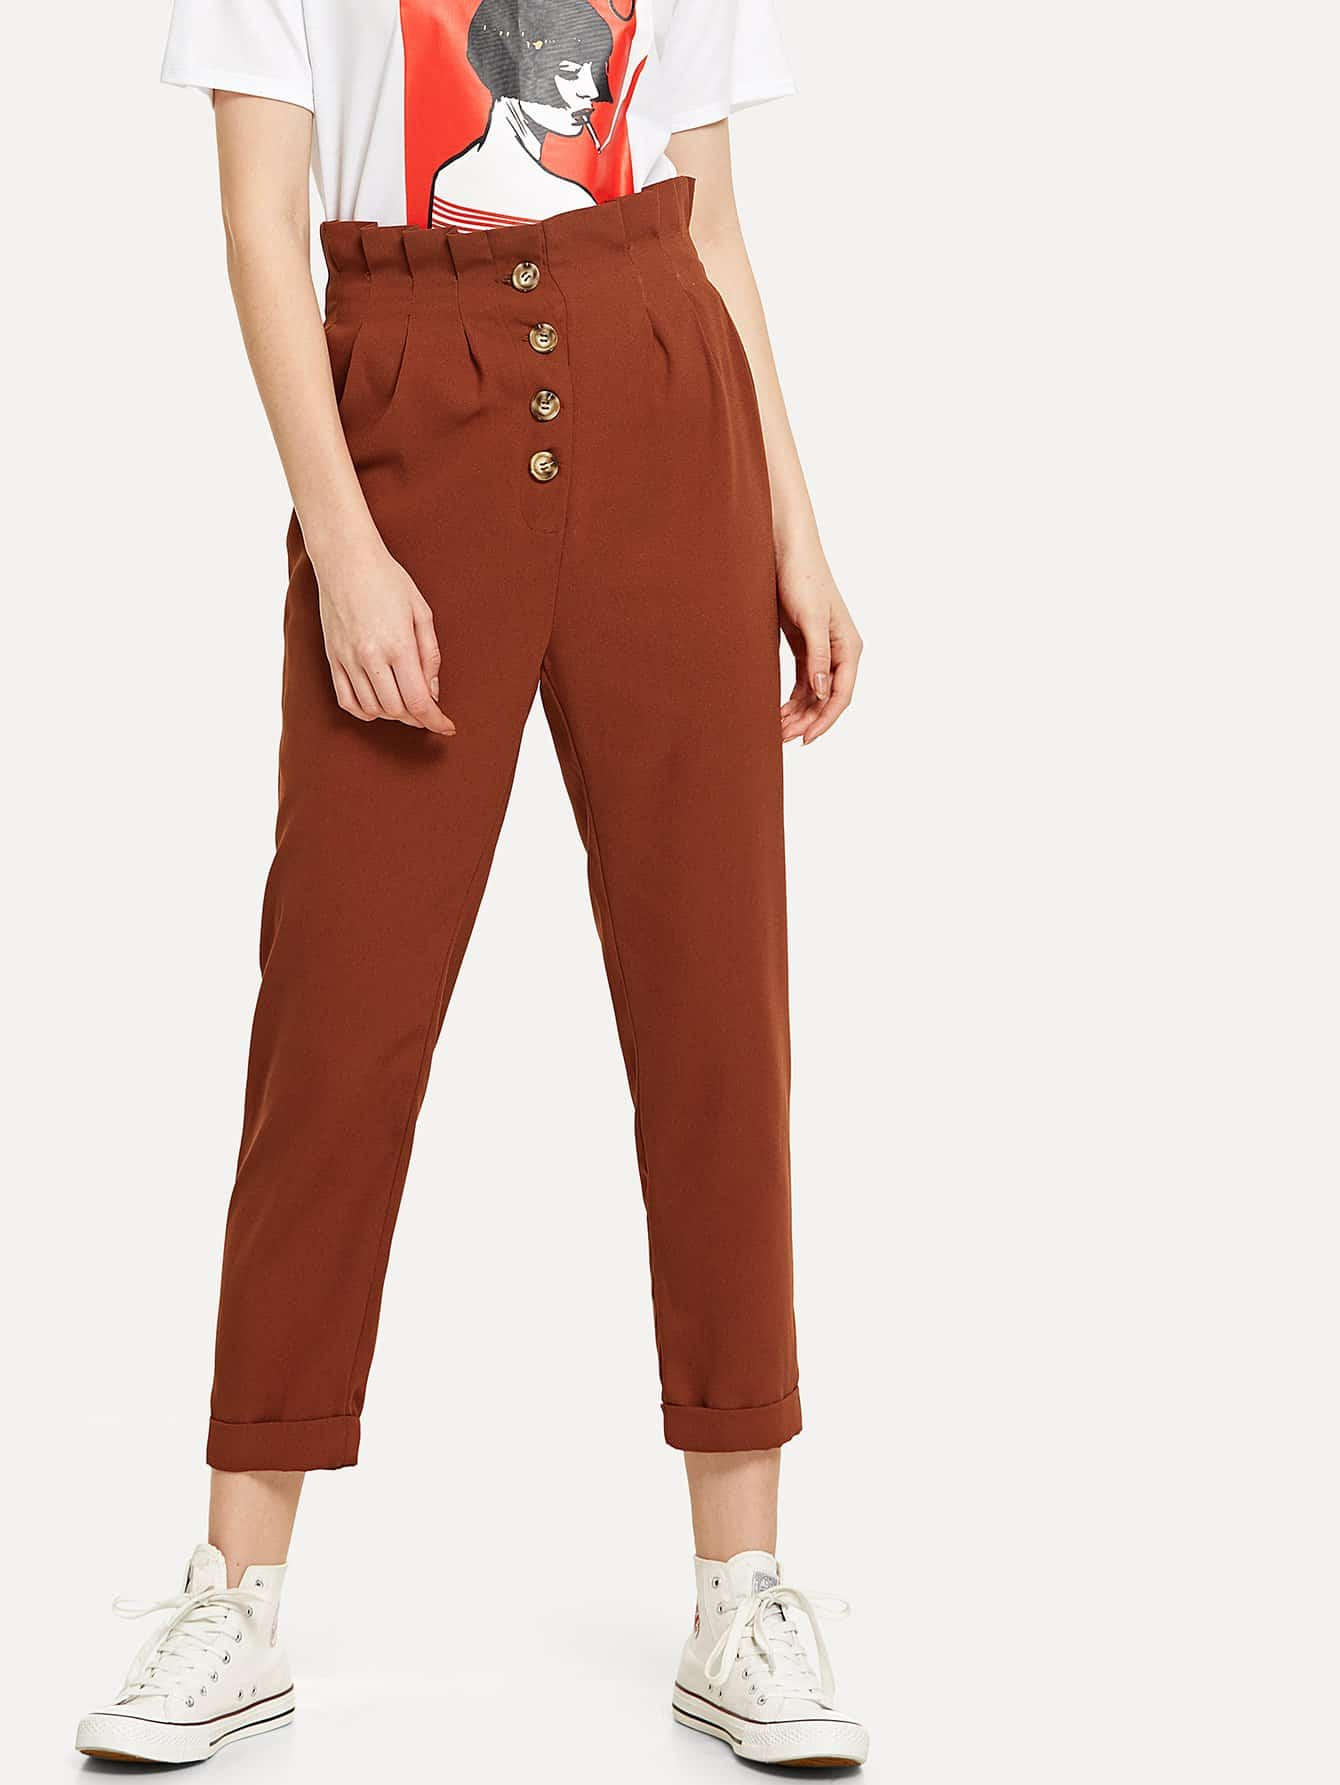 Button Up Frill Trim Rolled Hem Pants solid rolled hem pants